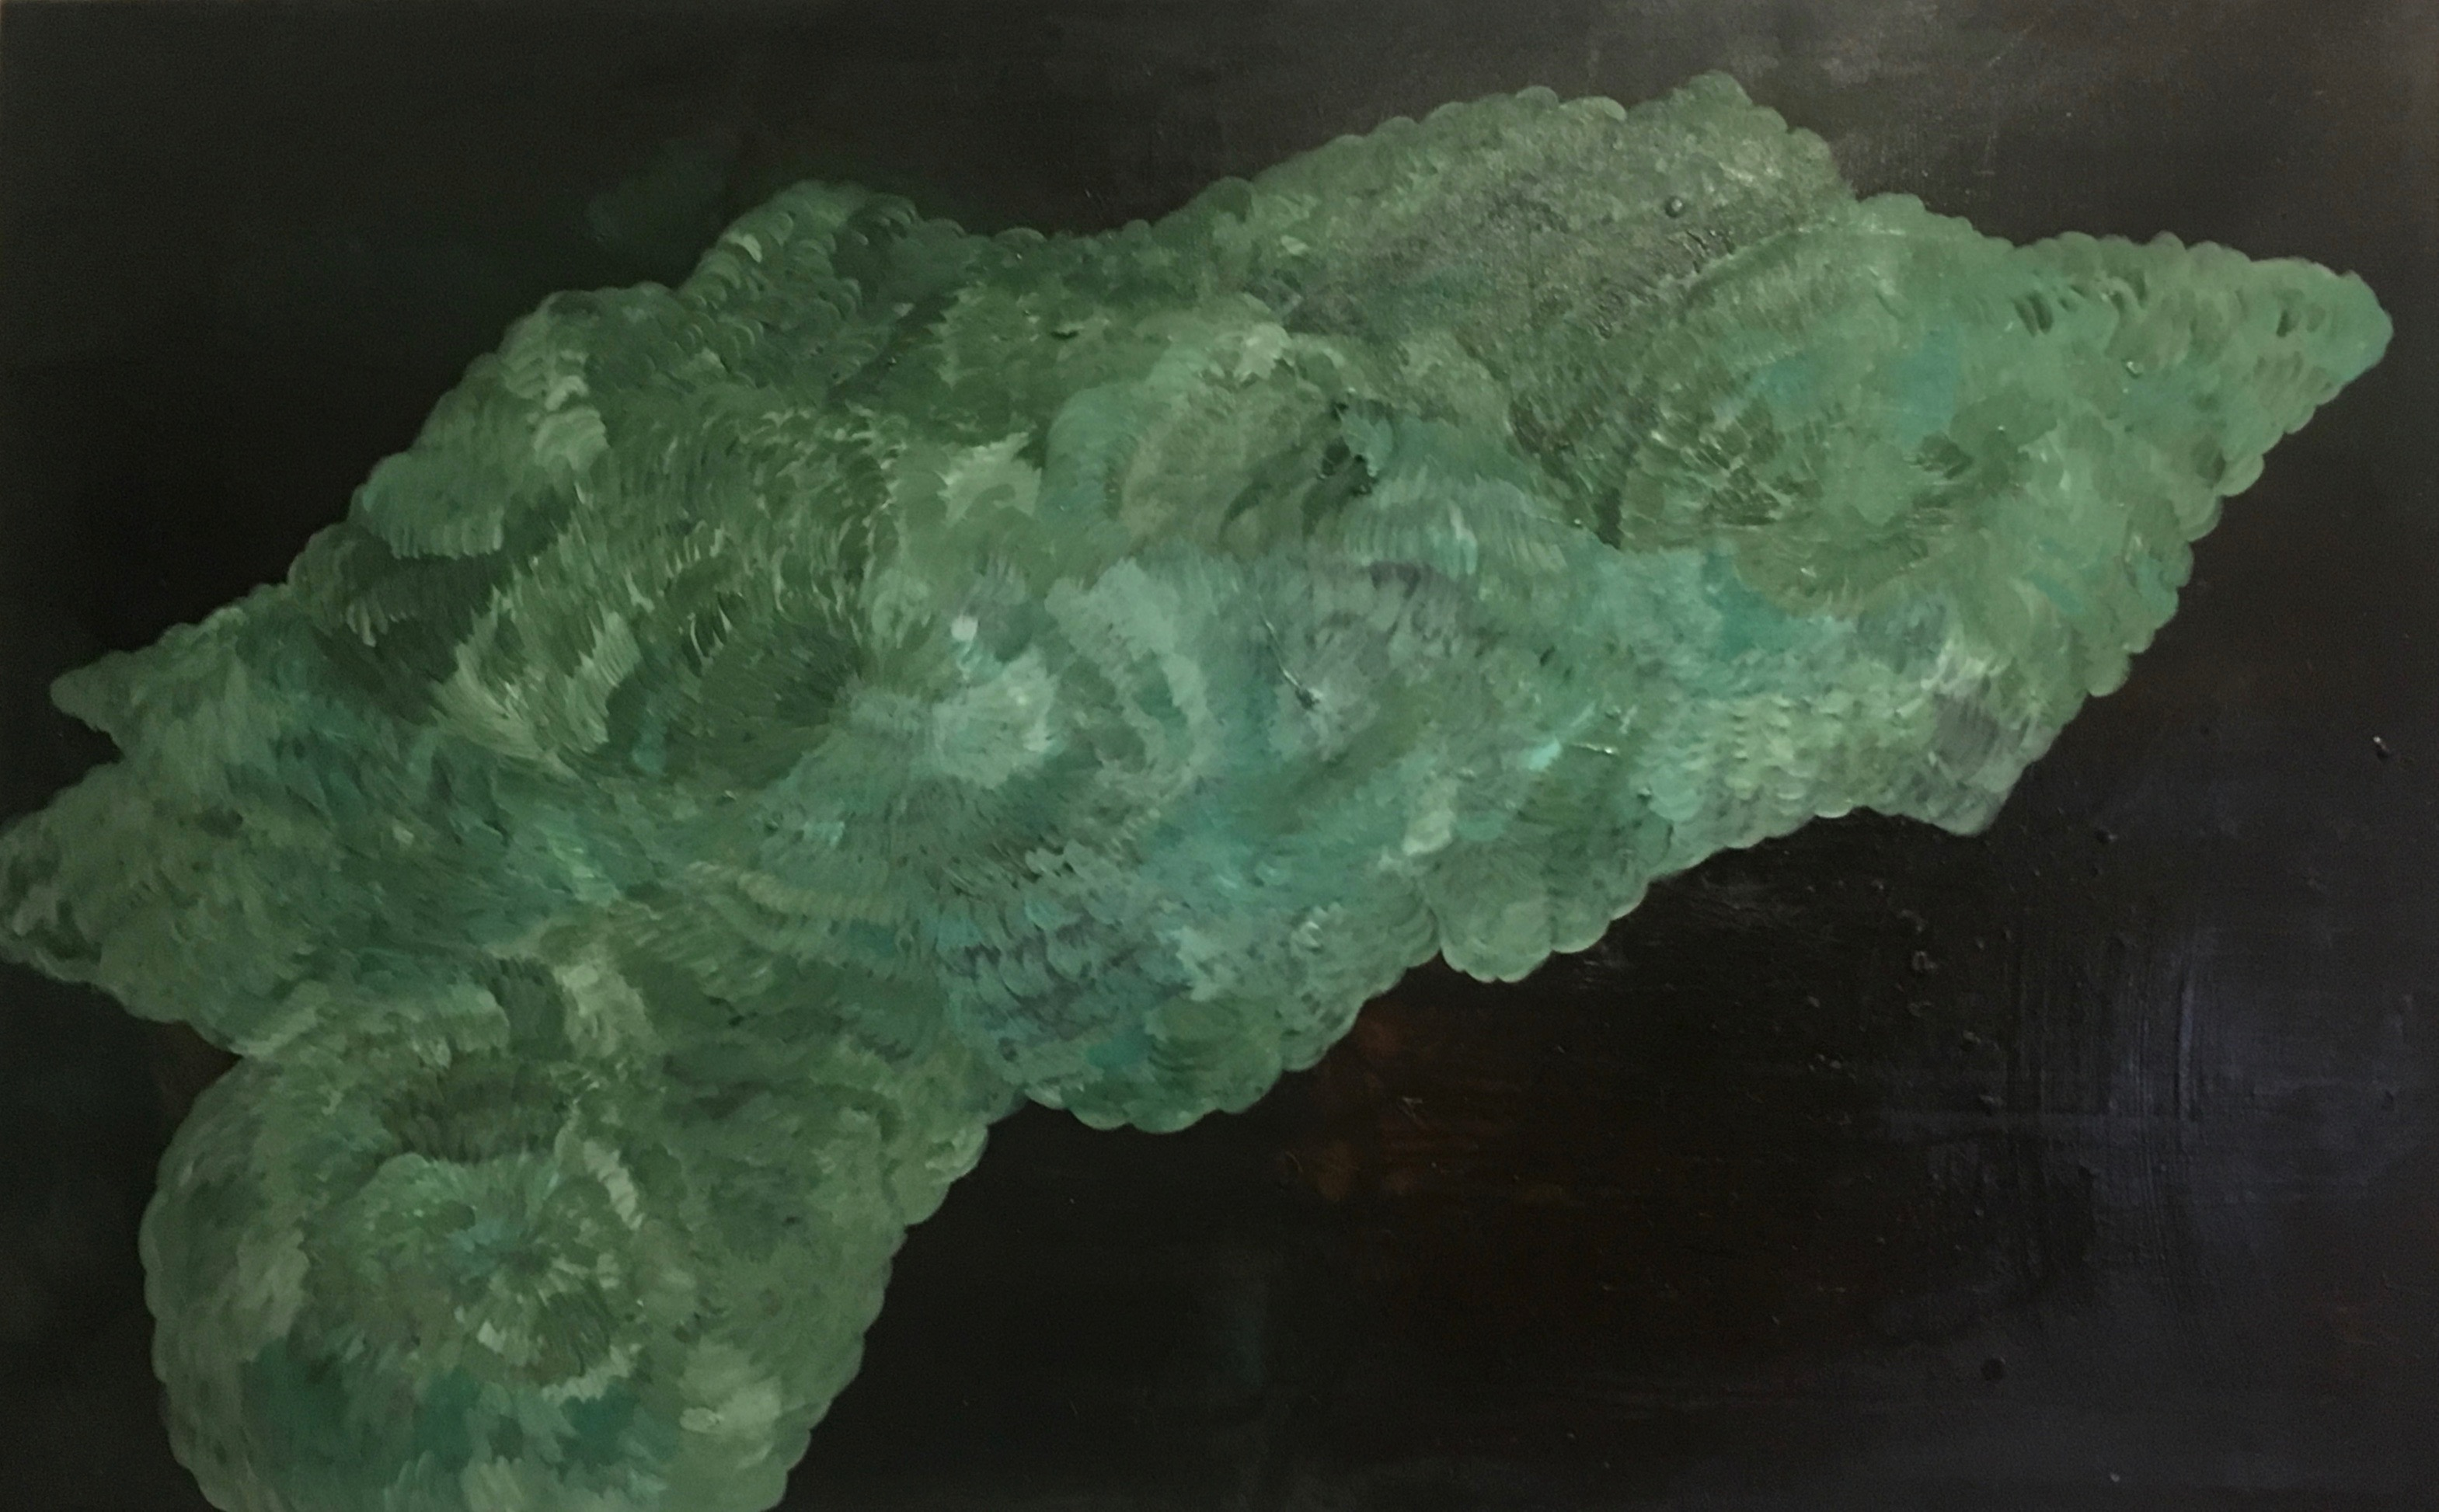 Zuzanna Skiba | Scottish green No. 1/3 | 2014 | Oil on canvas, varnished | verso signed, dated and titled |  93 x 150 cm